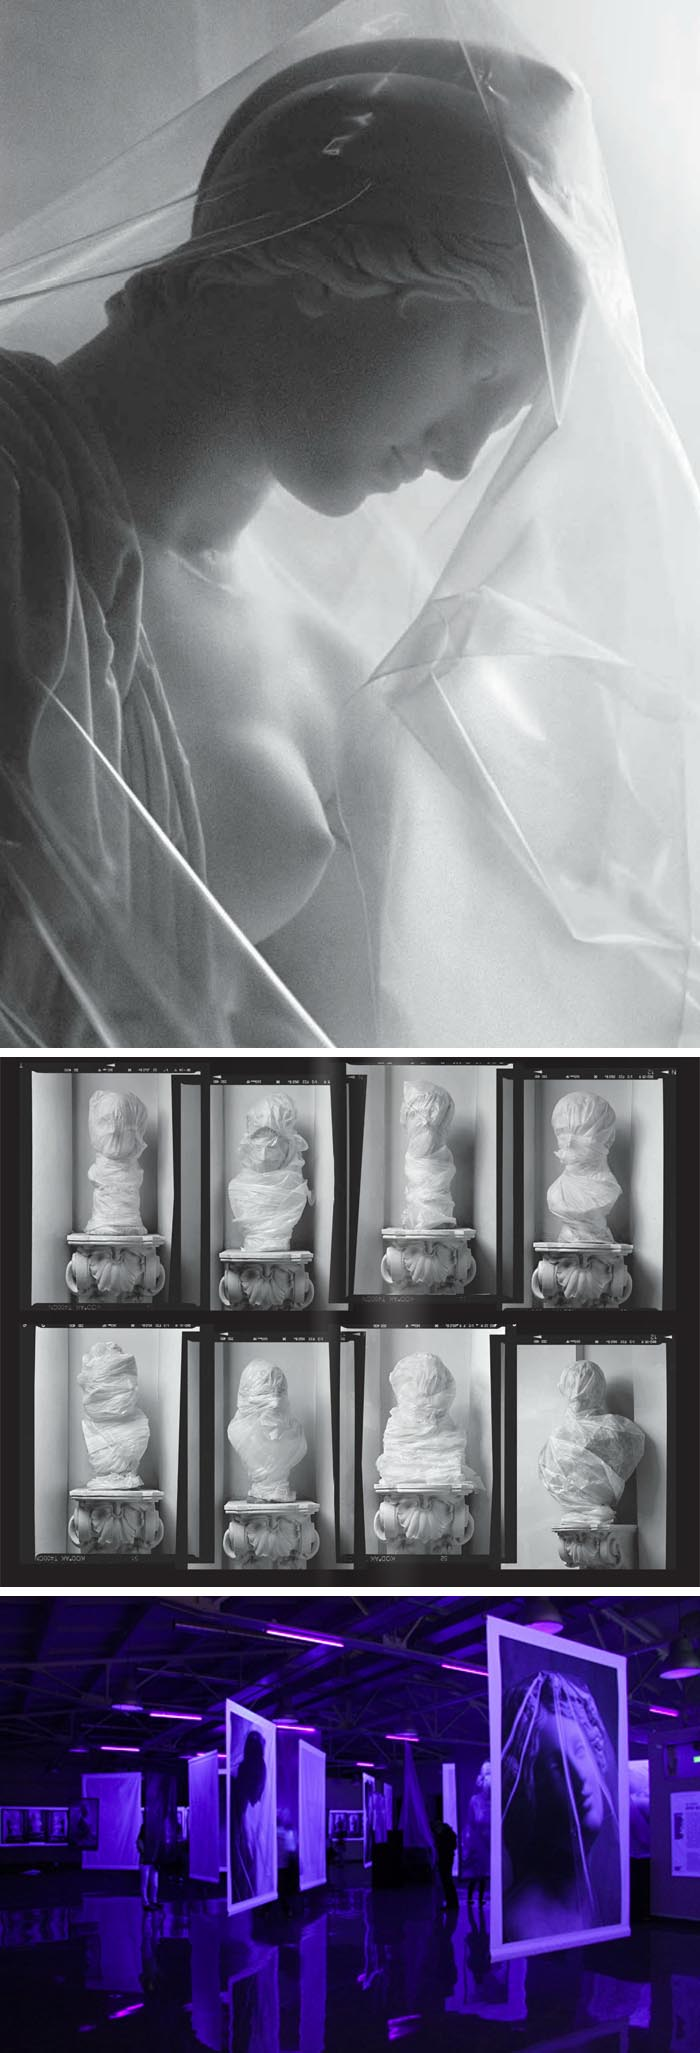 The New Hermitage, photographs of marble busts smothered/wrapped in polyethylene, contemporary Russian art and photography